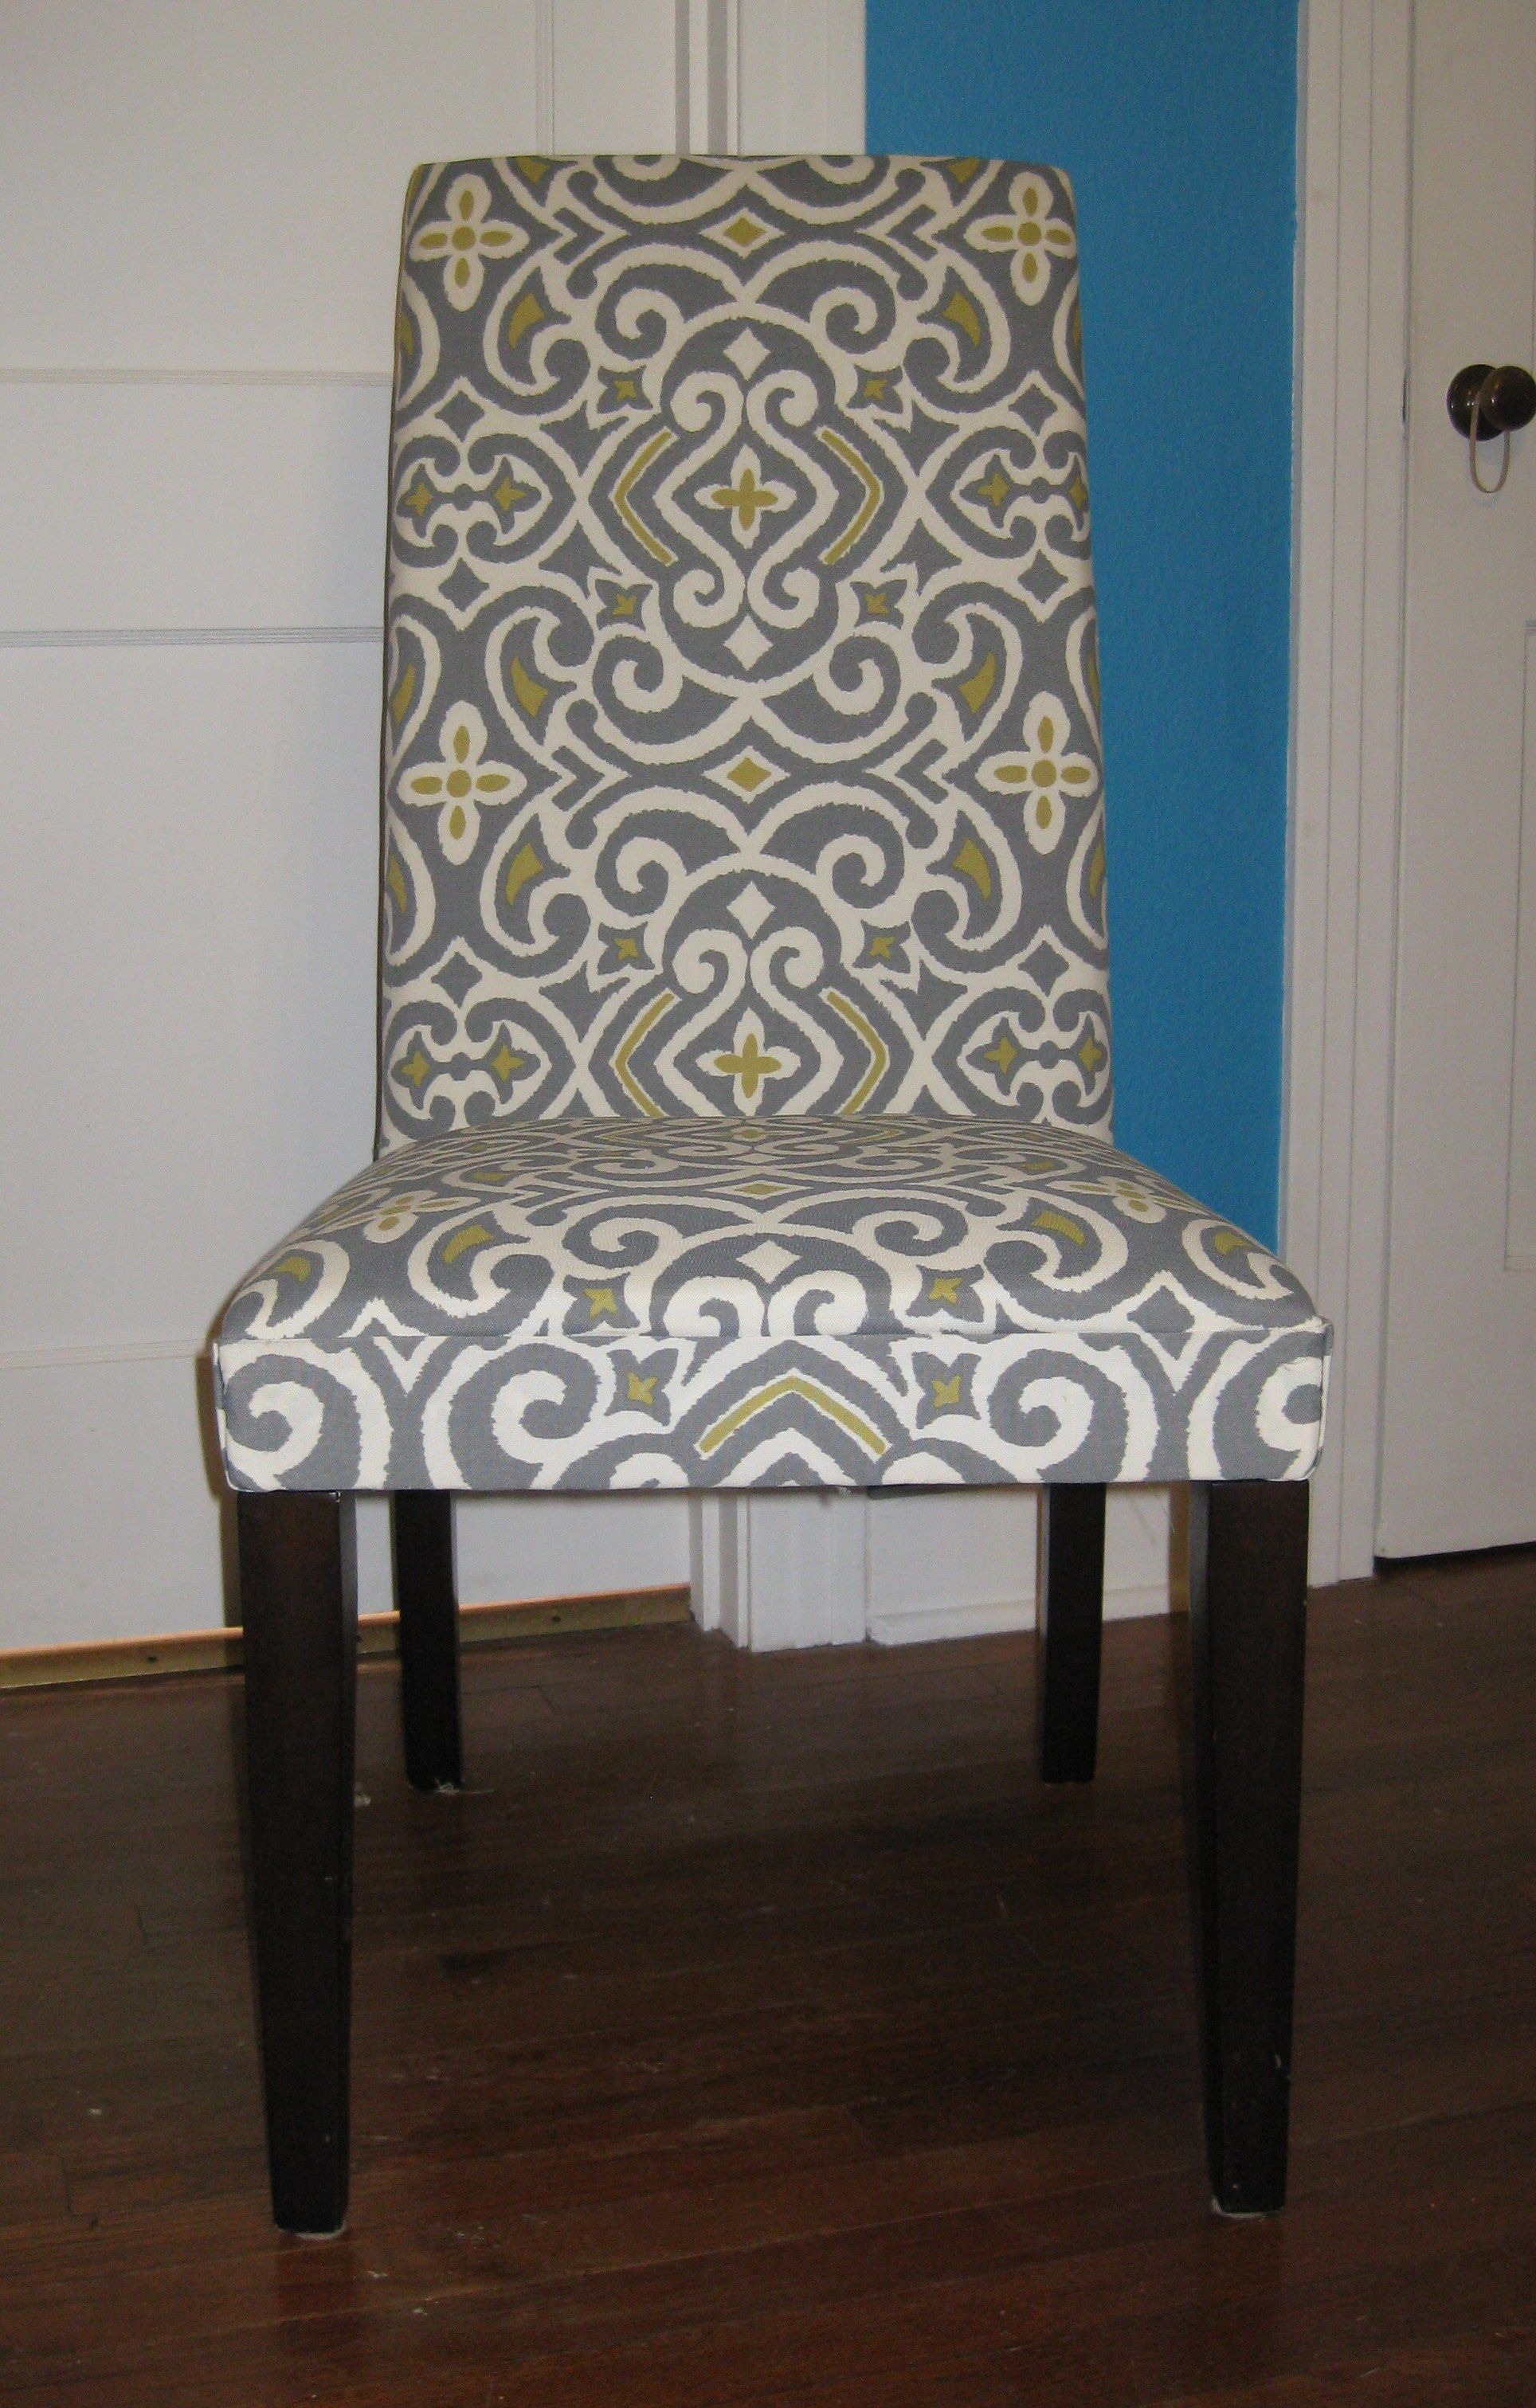 Reupholstered Parson's chair in grey/citron/ivory print